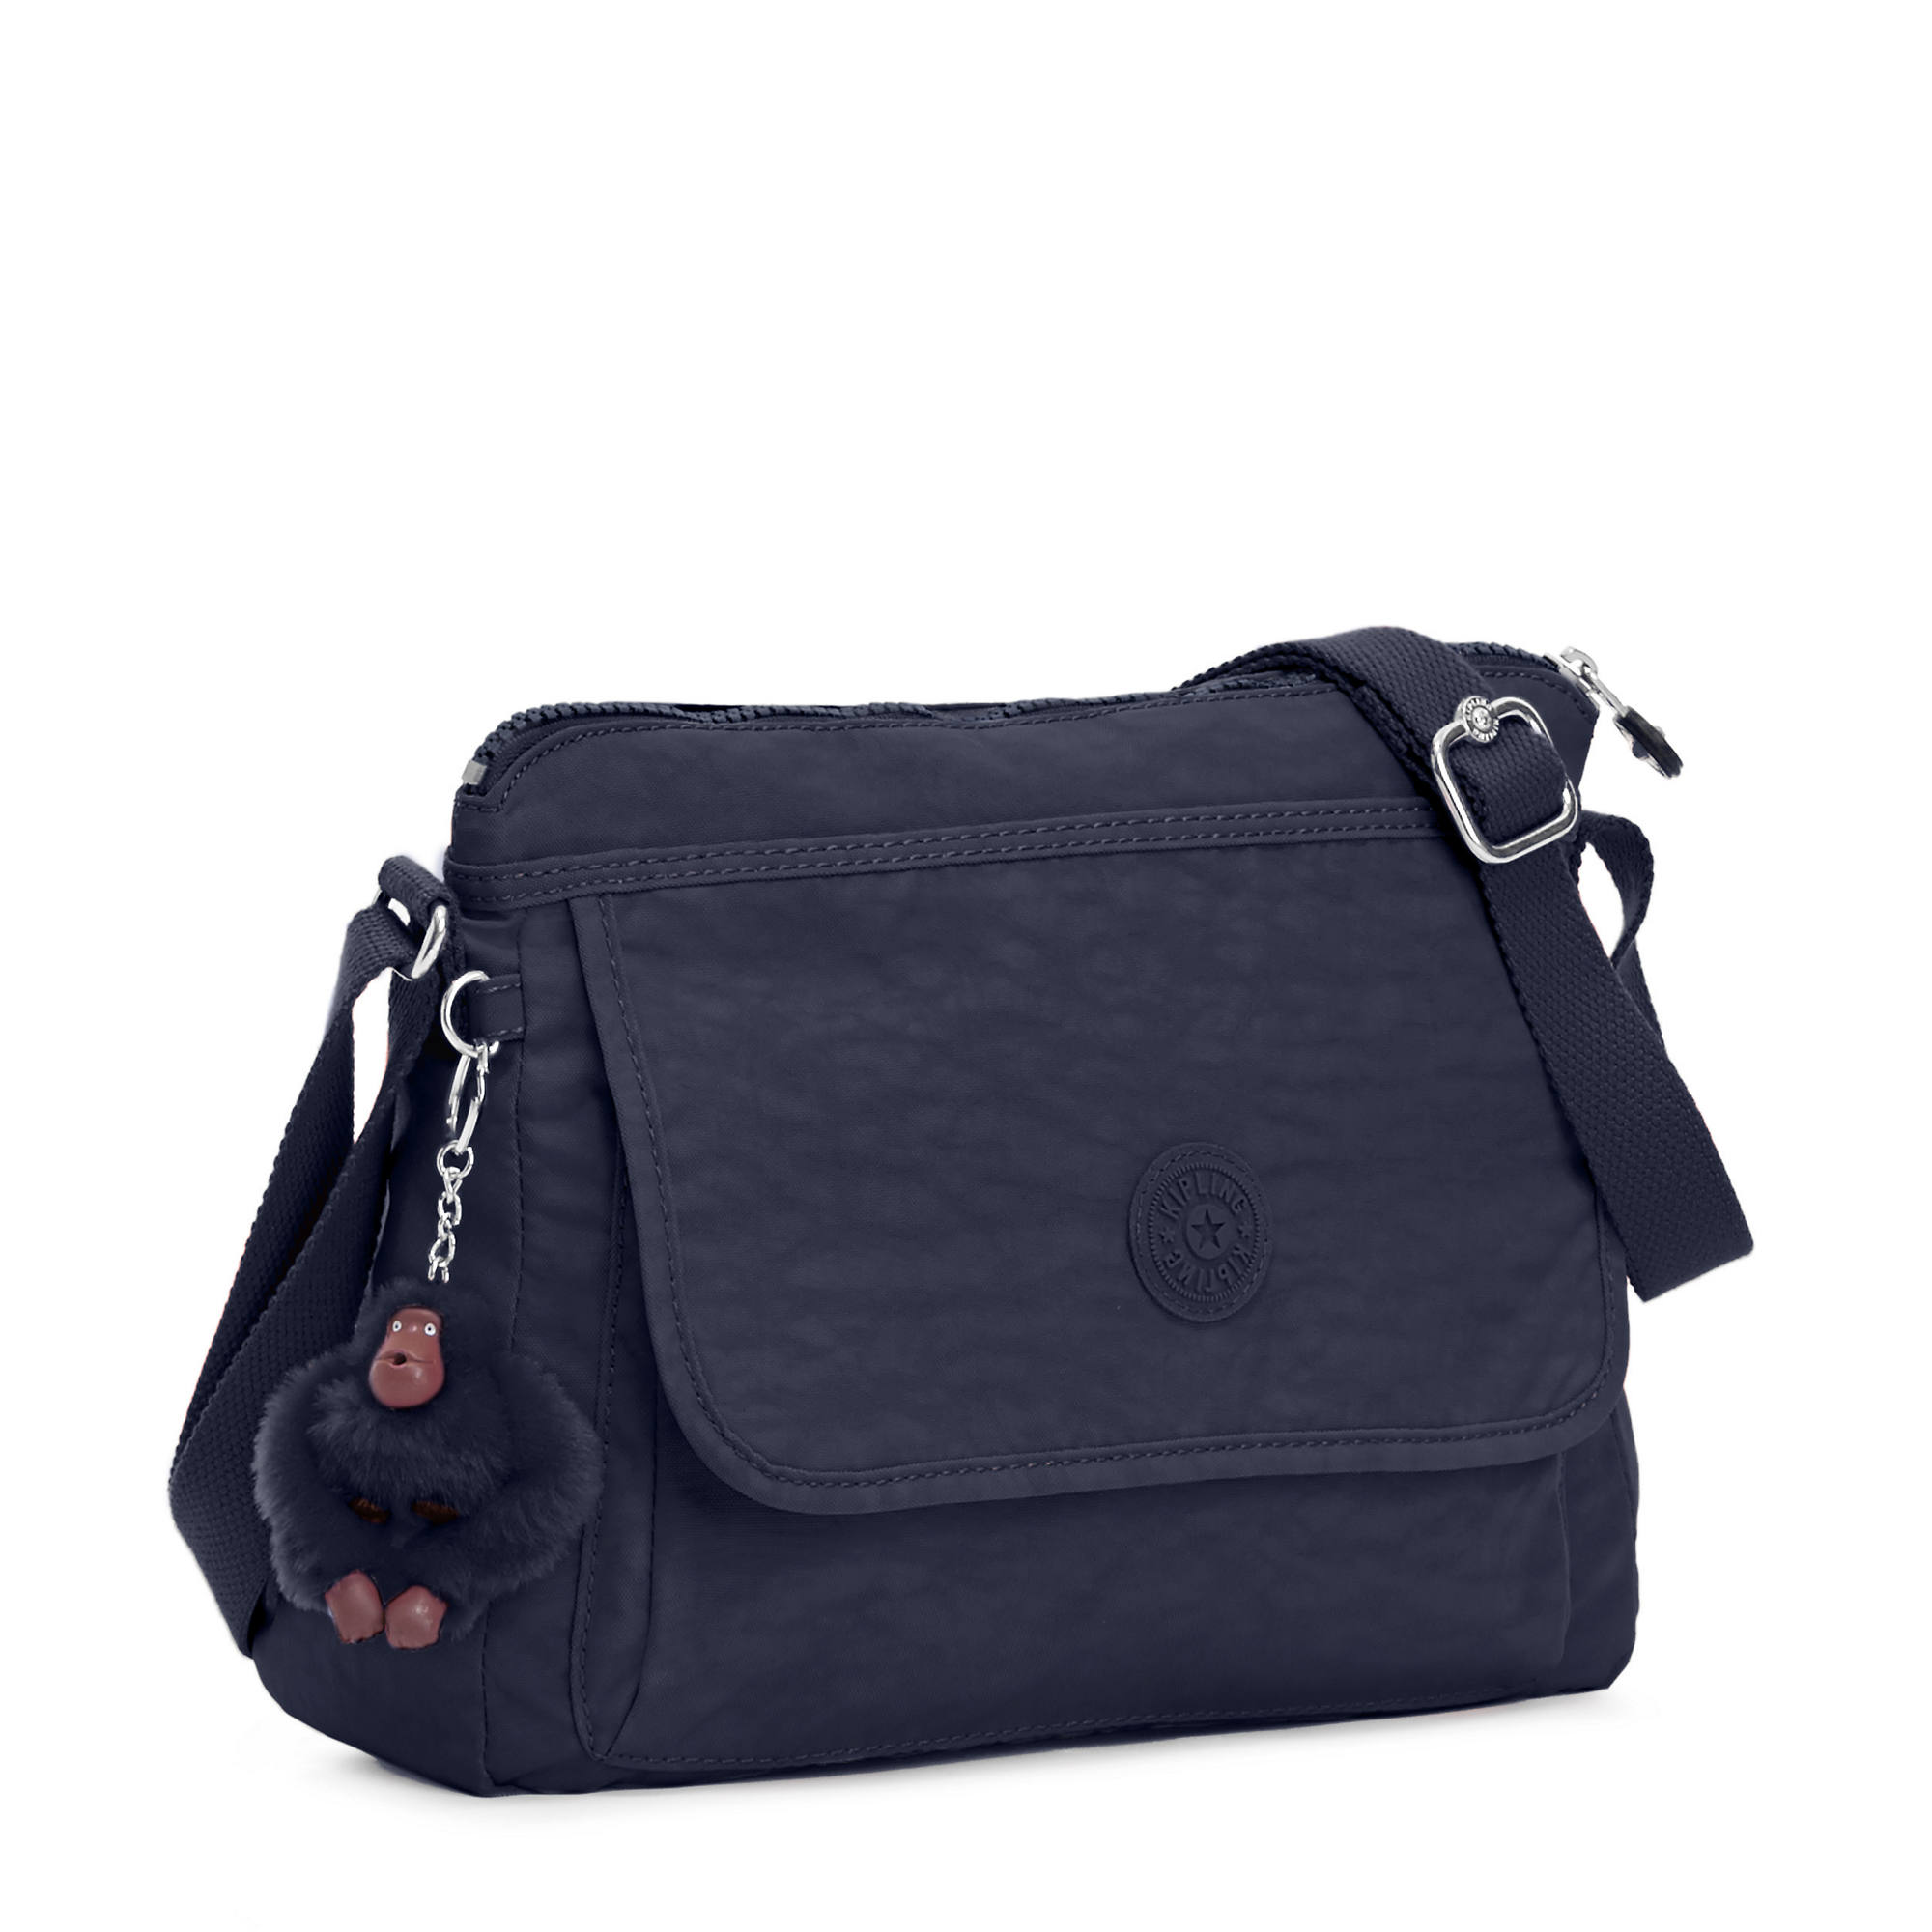 for whole family purchase cheap san francisco Details about Kipling Aisling Crossbody Bag